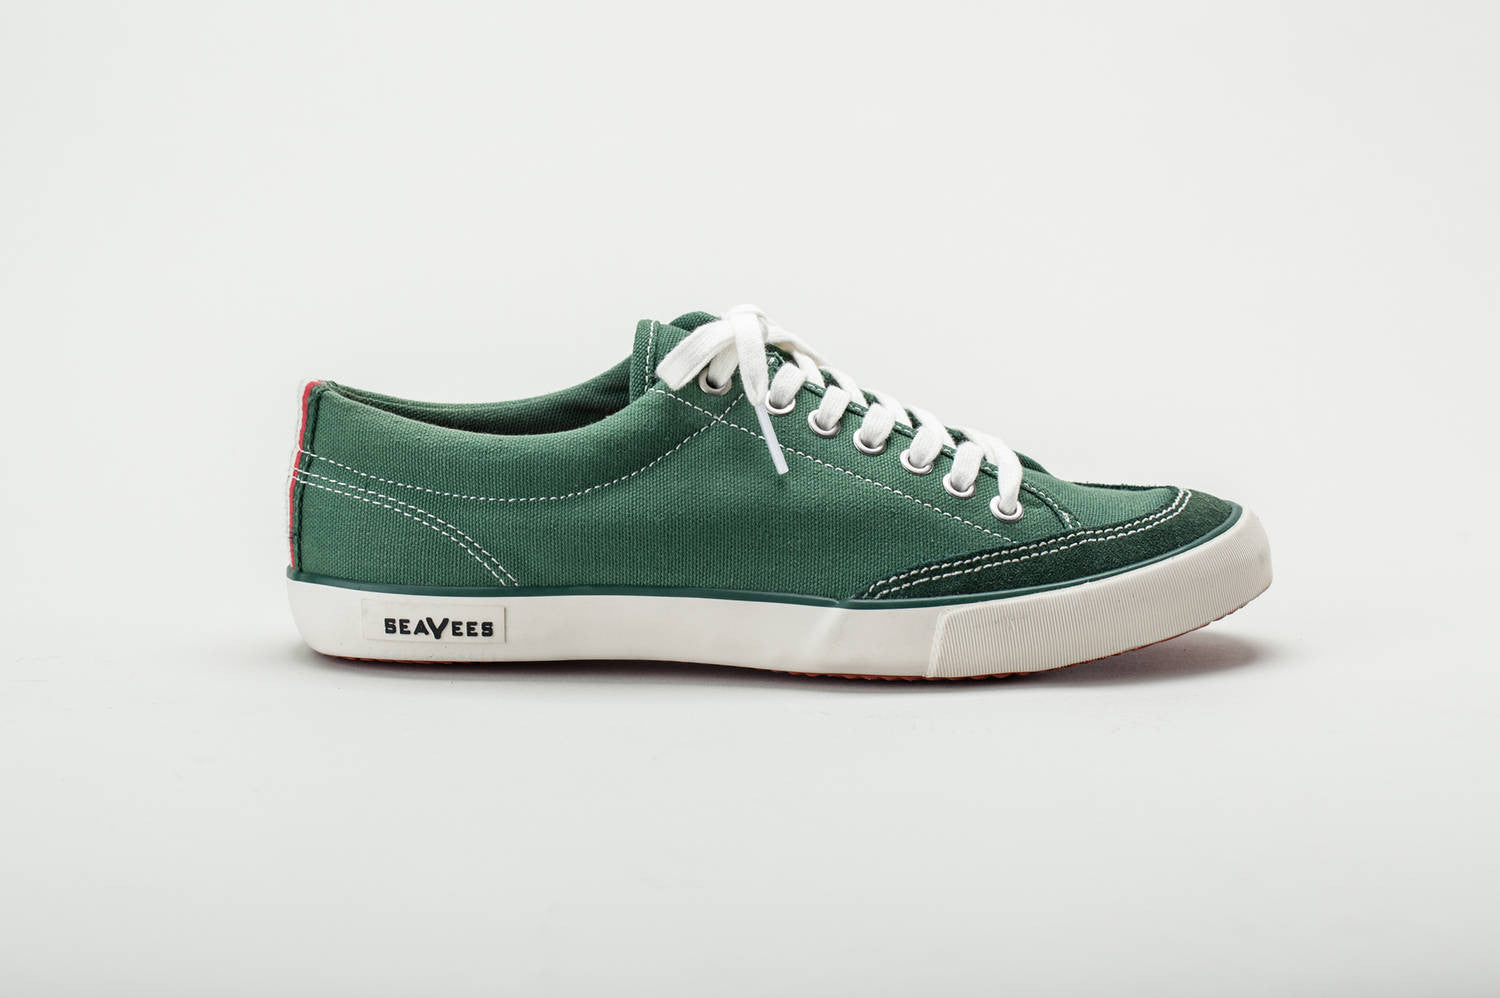 0565M_westwood_tennis_shoe_green_side_2048x2048